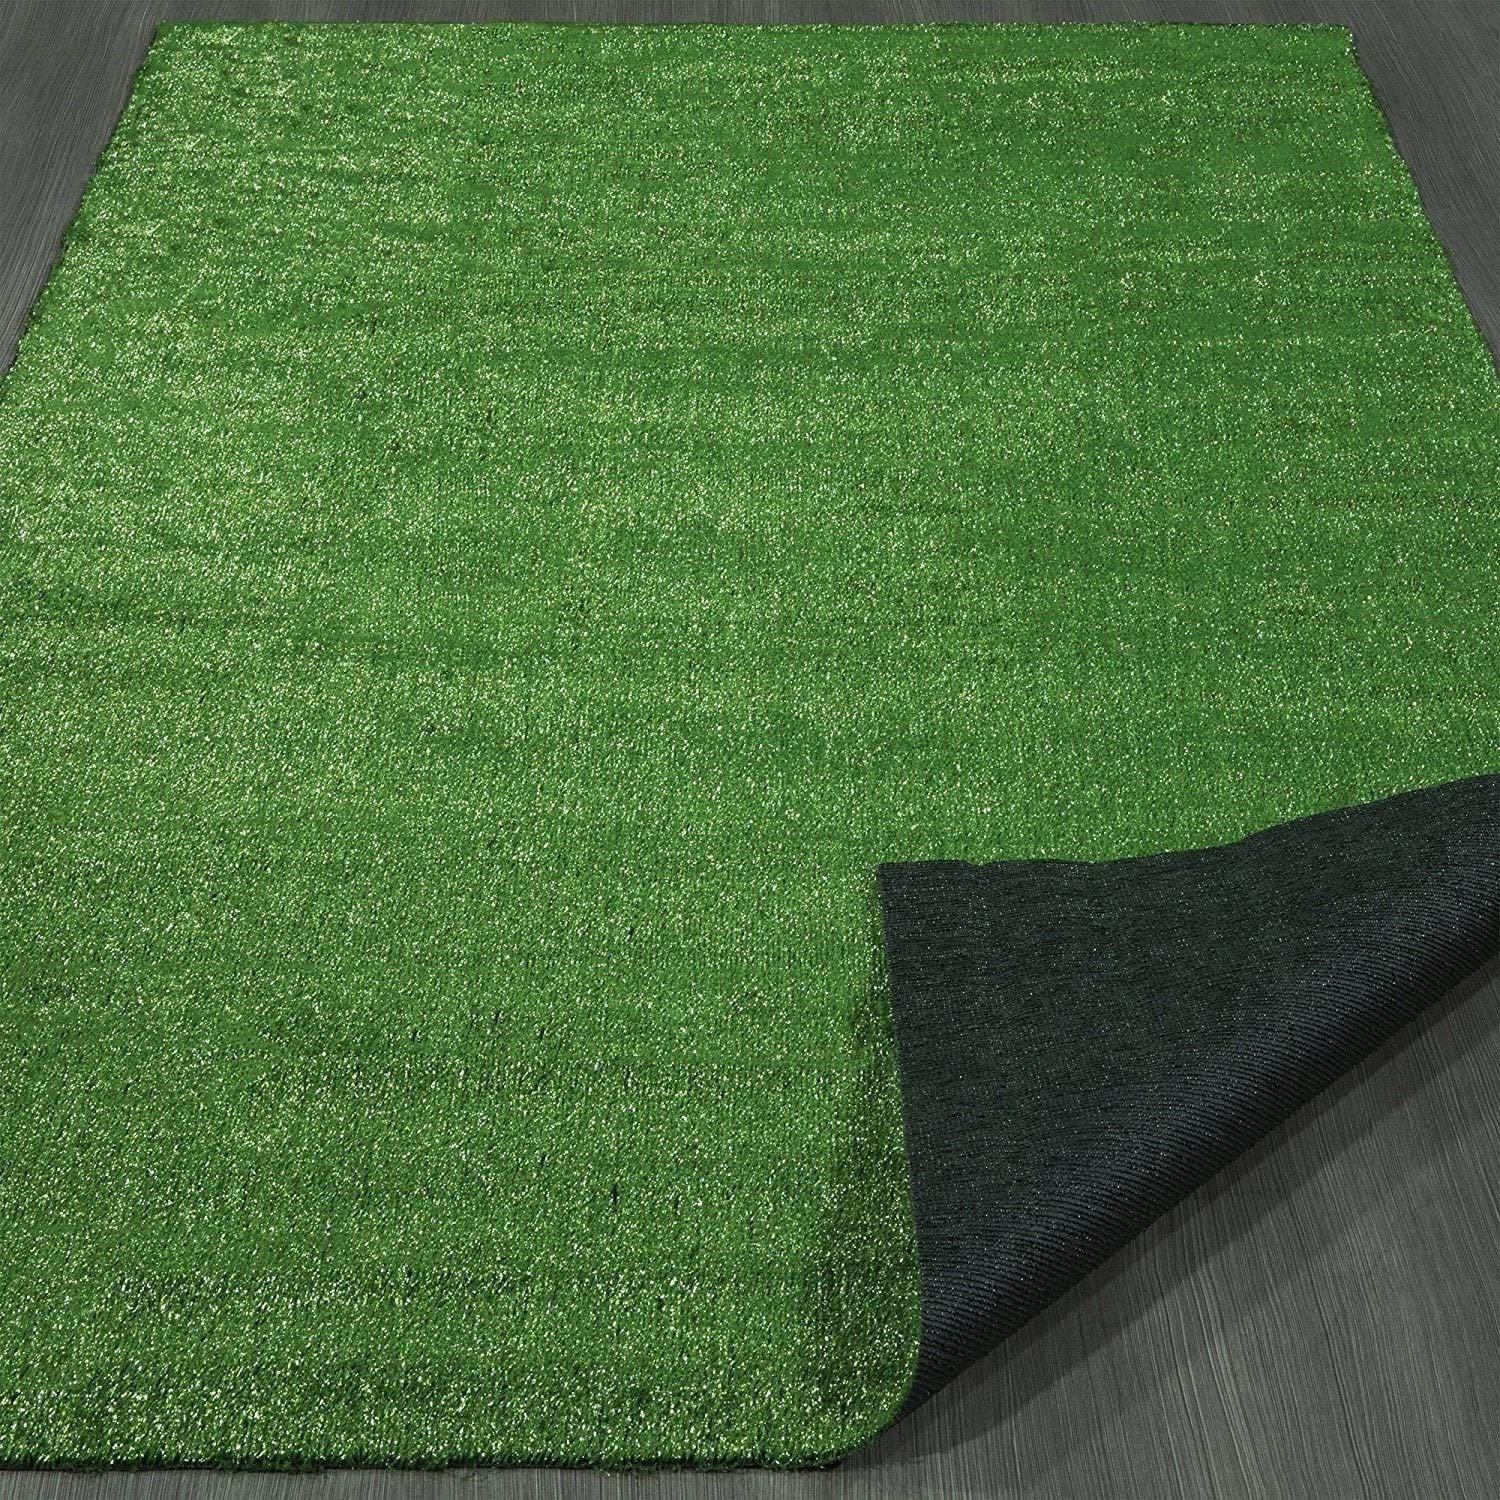 "Outdoor Turf Rug Green Artifical Grass Out Door Lawn Patio Landscape Theme Lawn Patio Area Rugs Lawncare Polypropylene 6'6"" x 9'3"""